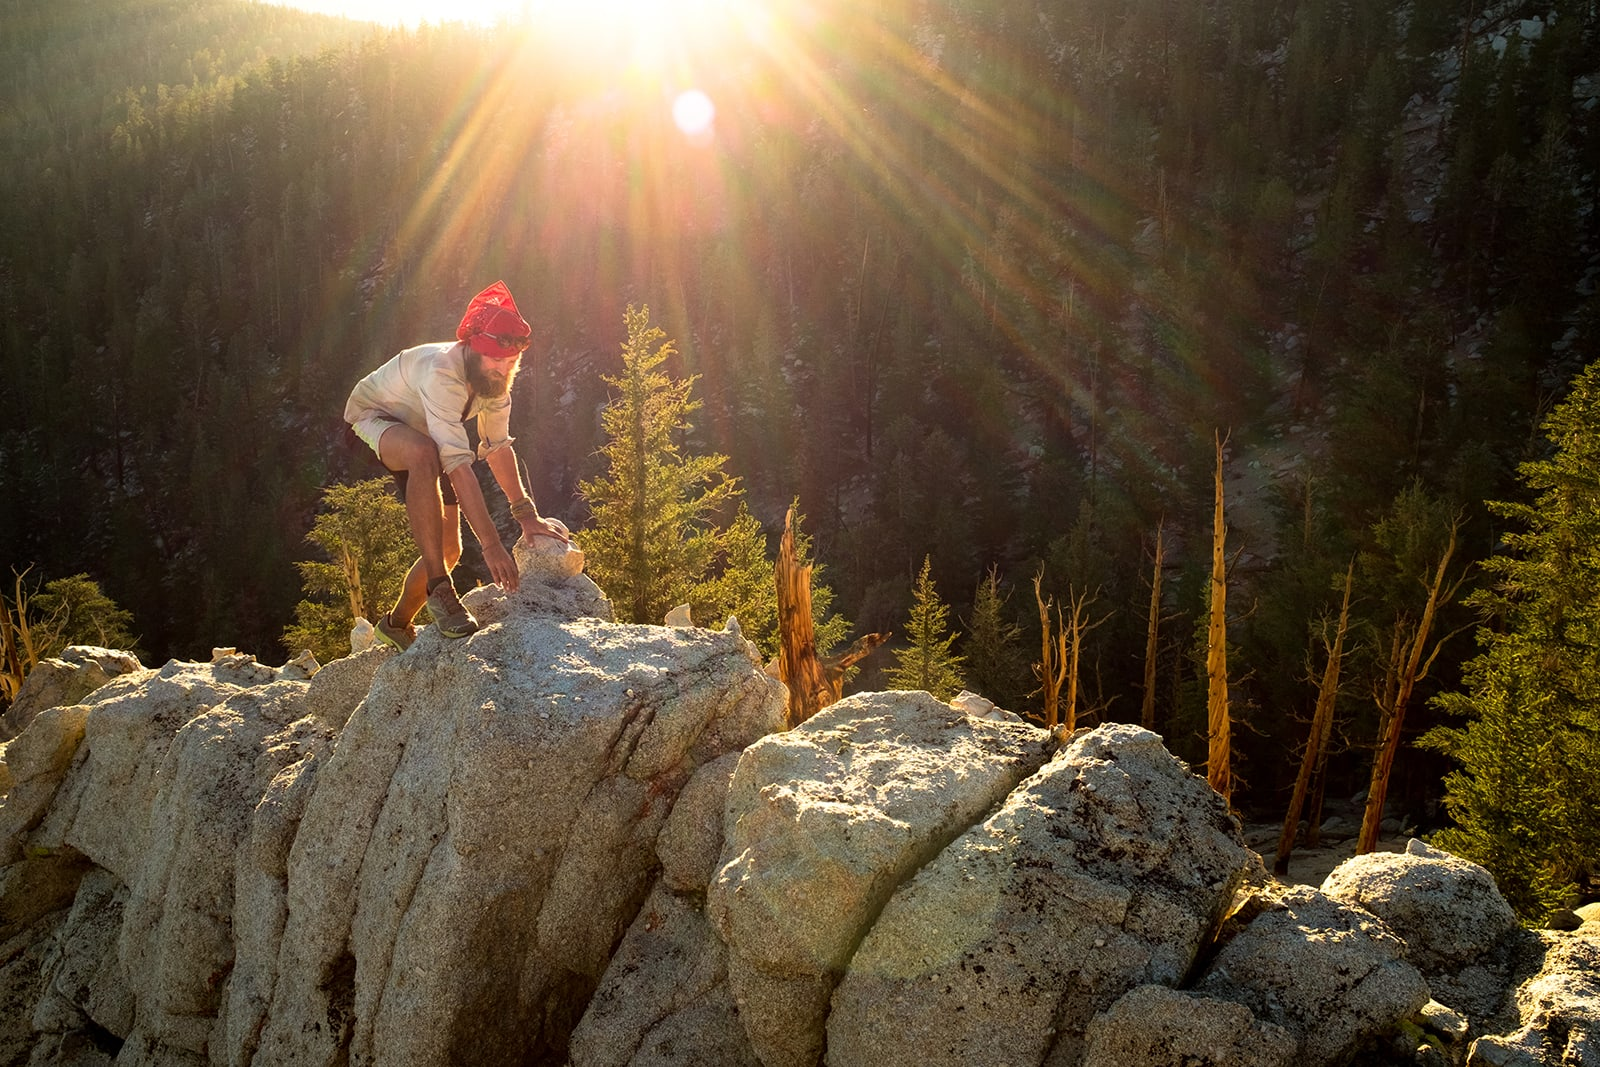 'Jamieson' climbing over boulders near camp and the sun begins to set.